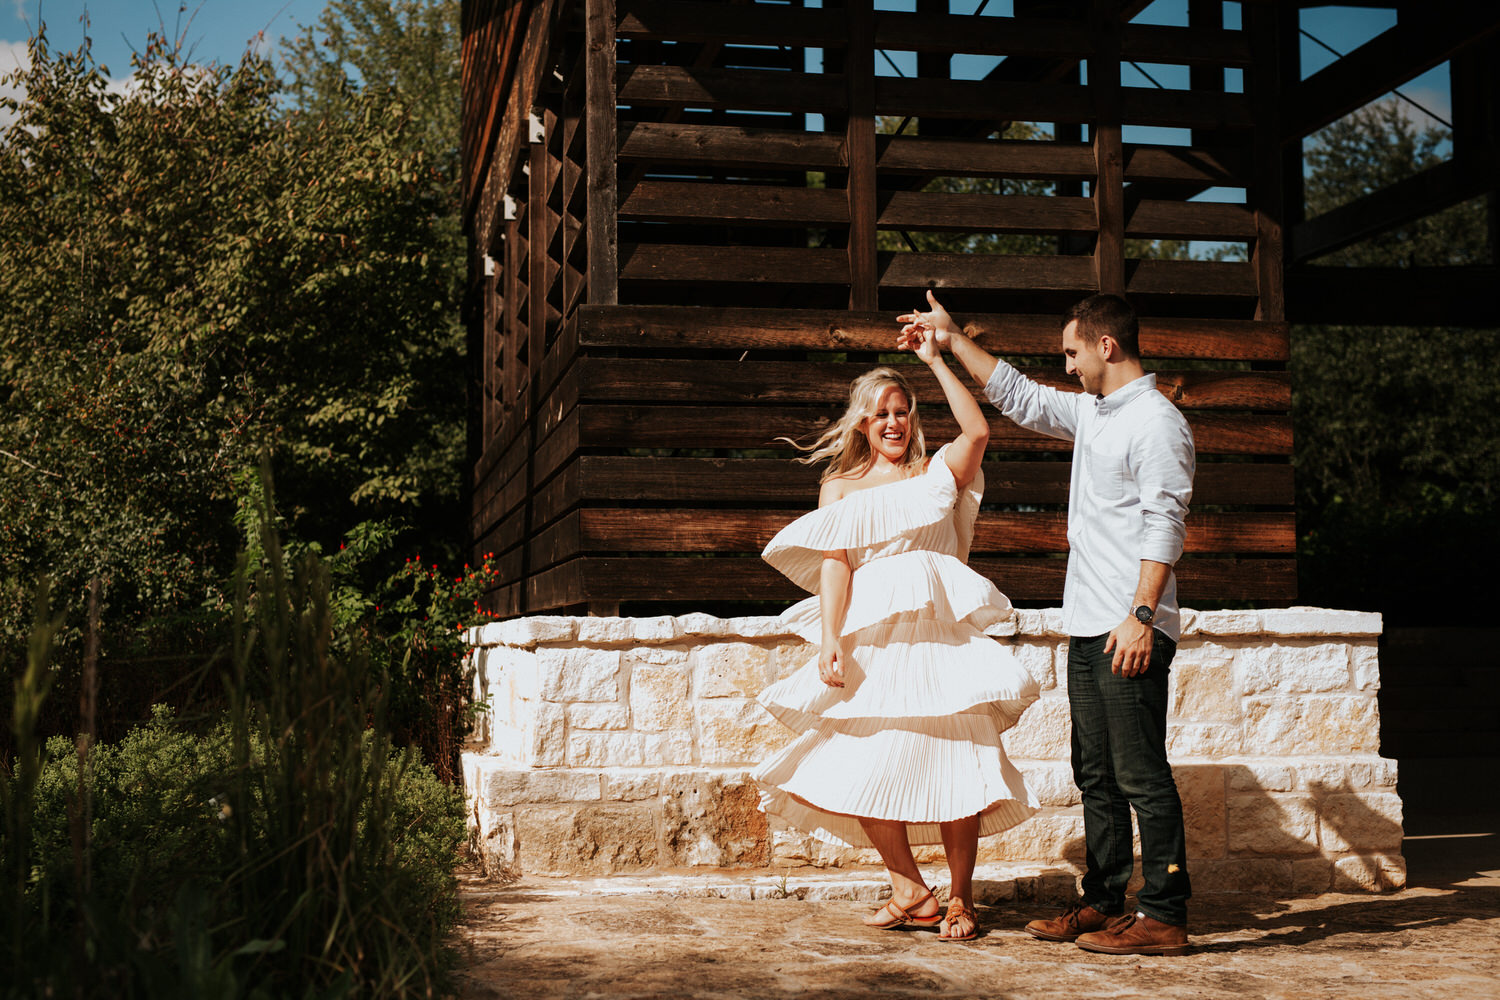 Engaged couple at Lady Bird Johnson Wildflower Center